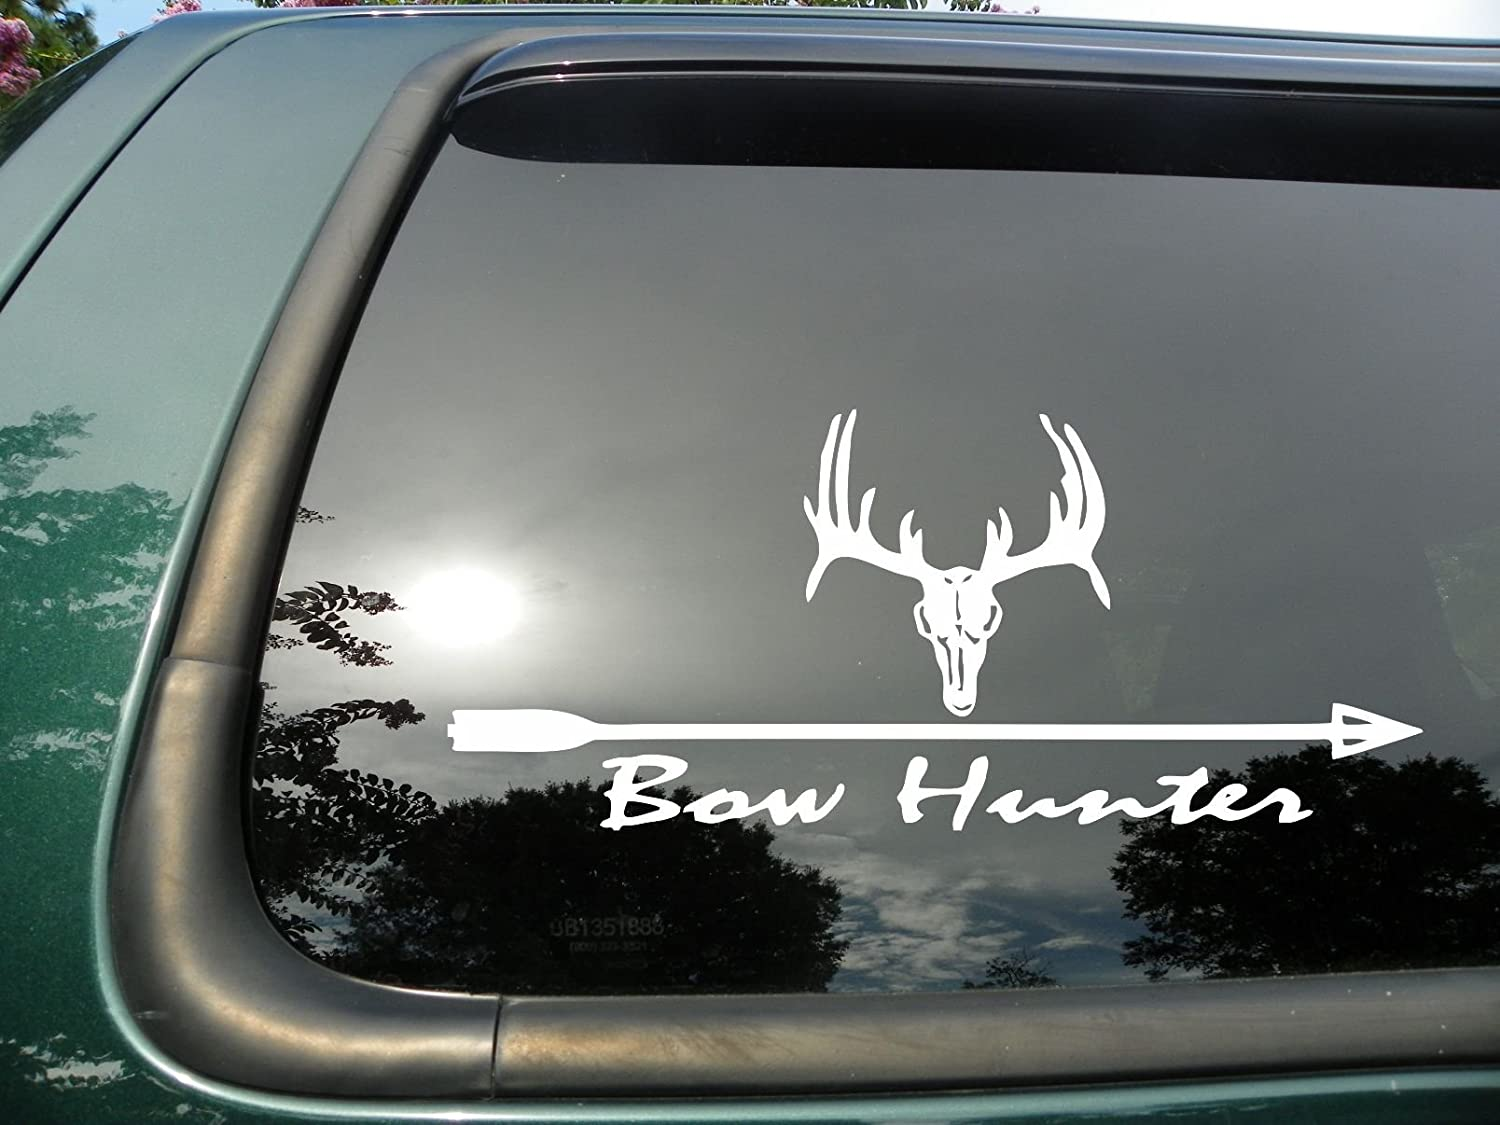 Amazoncom Bowhunter Wskull Die Cut Christian Vinyl Window - Vinyl window decals amazon